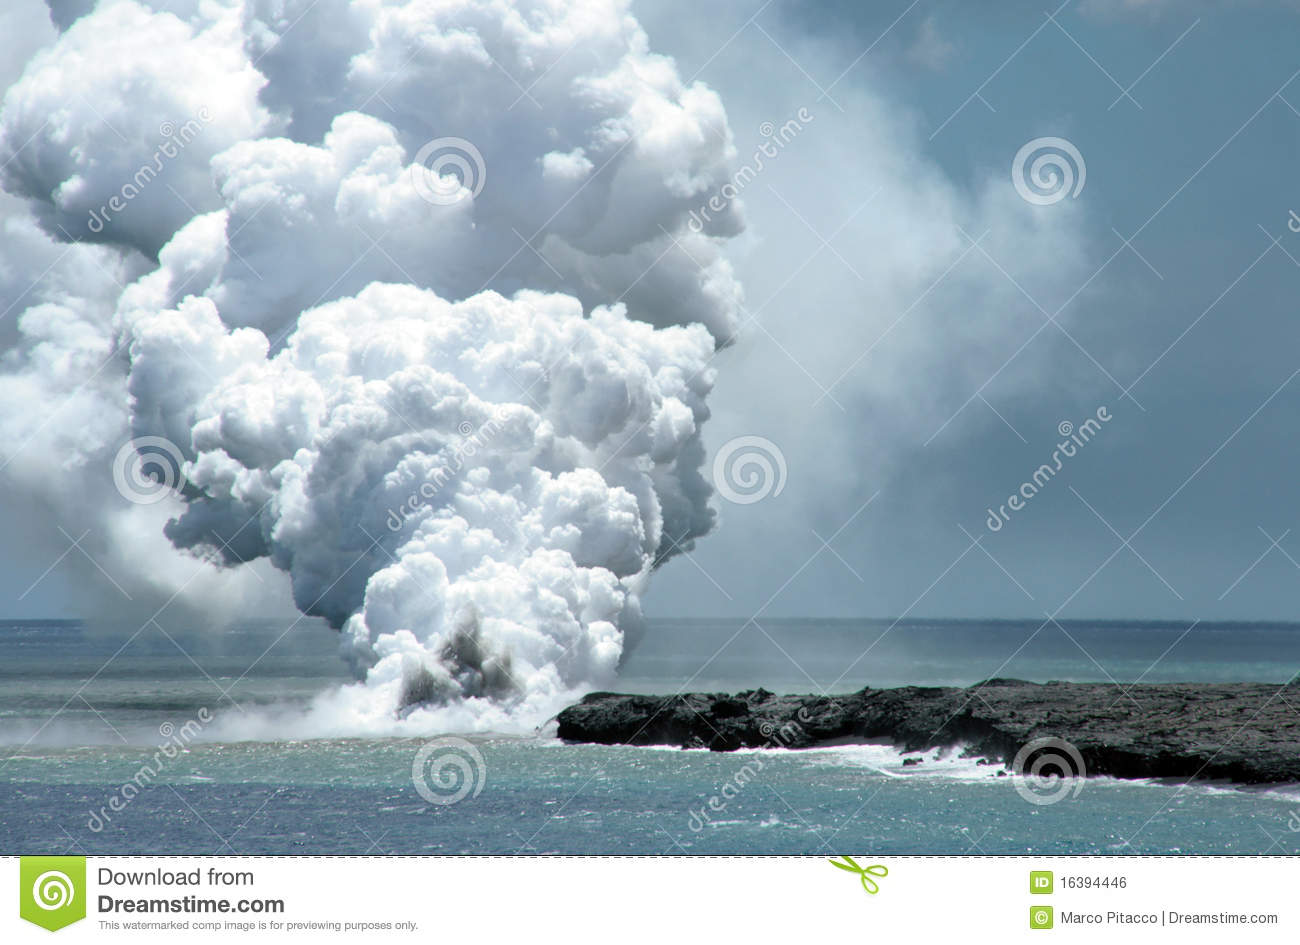 Lava Flow Royalty Free Stock Image   Image  16394446